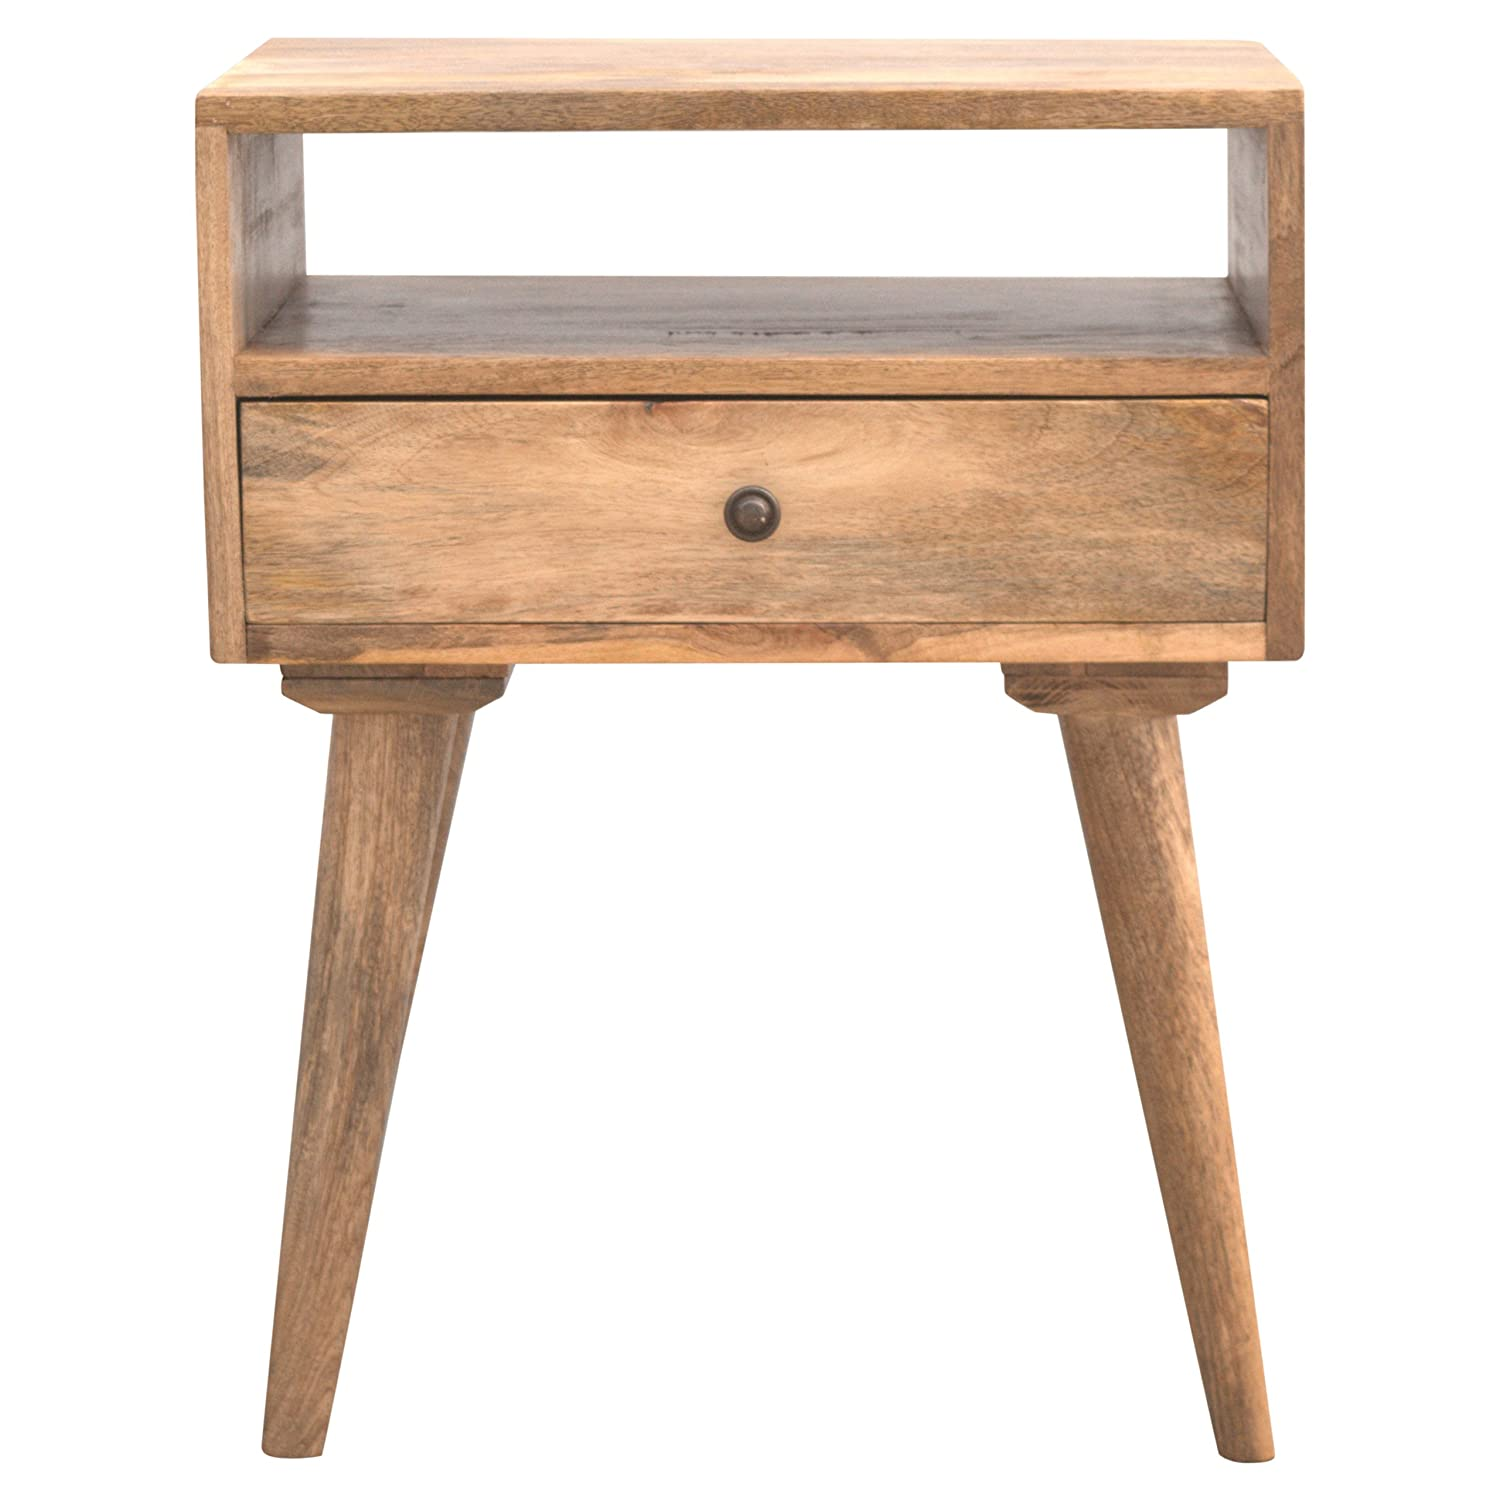 Artisan Furniture Nordic Designed Bedside with 1 Drawer & Open Slot, Wood, Natural Oak/Ish Finish Global Vision Company IN143